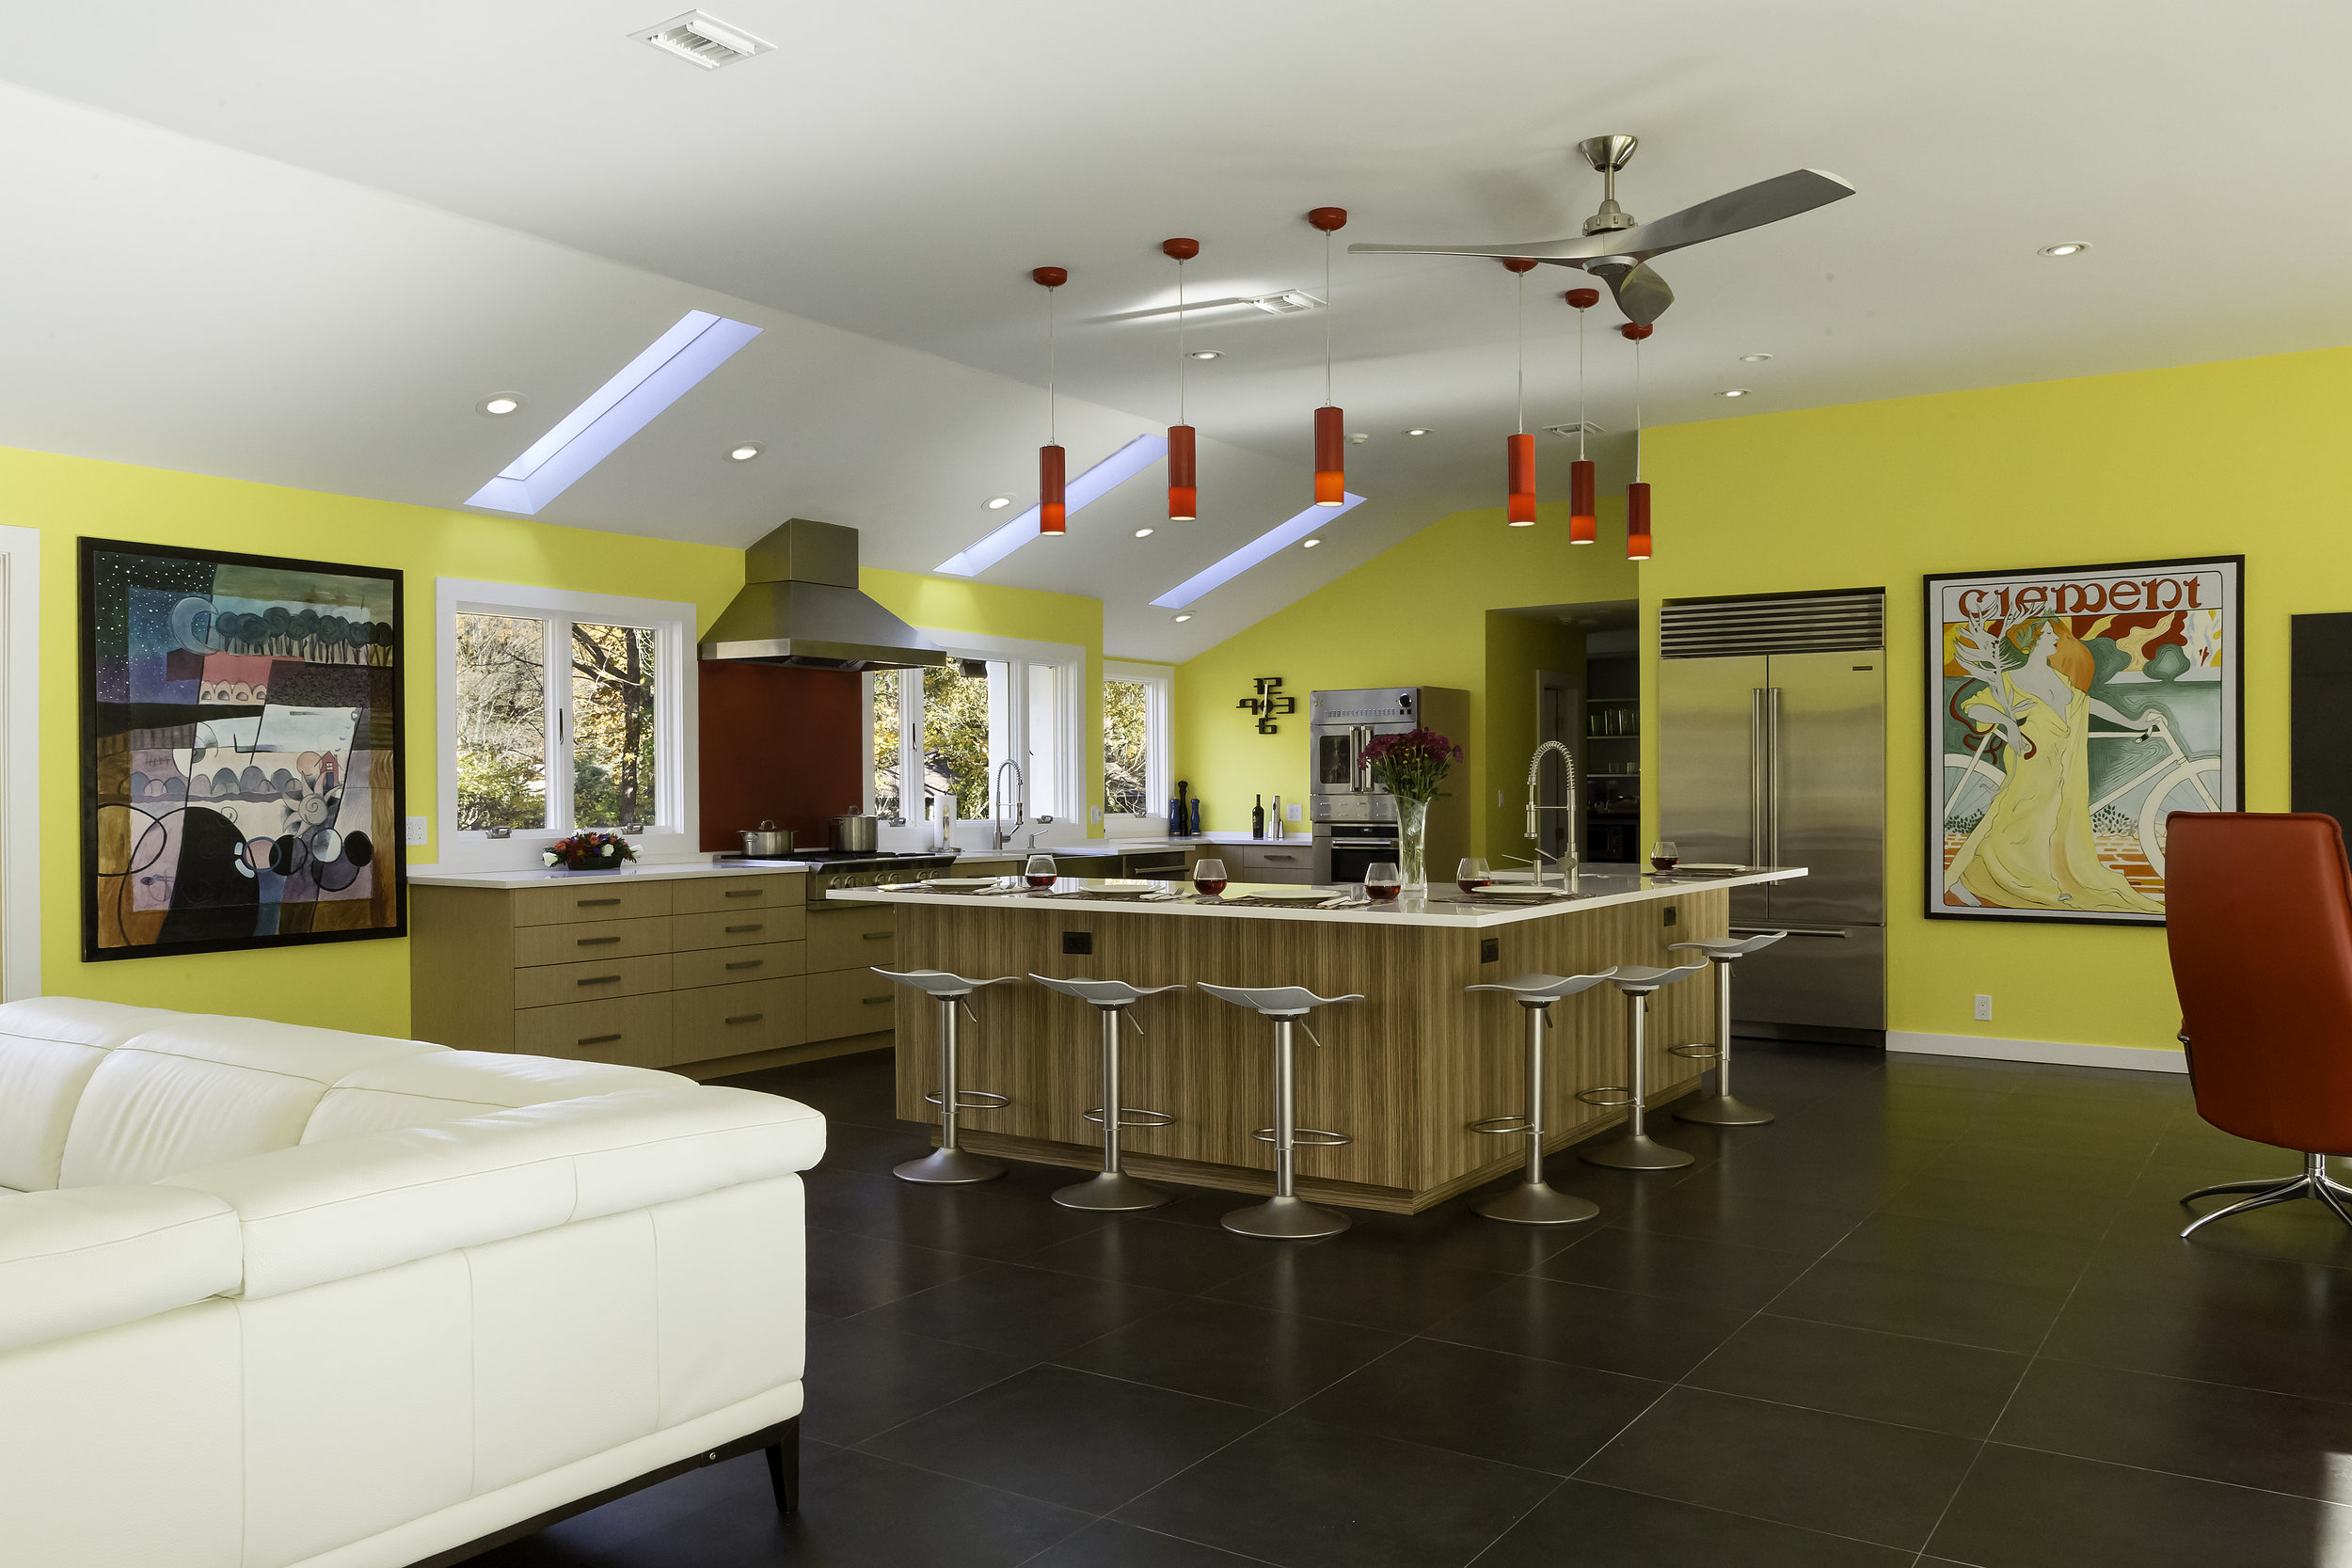 Contemporary style kitchen with an open plan design